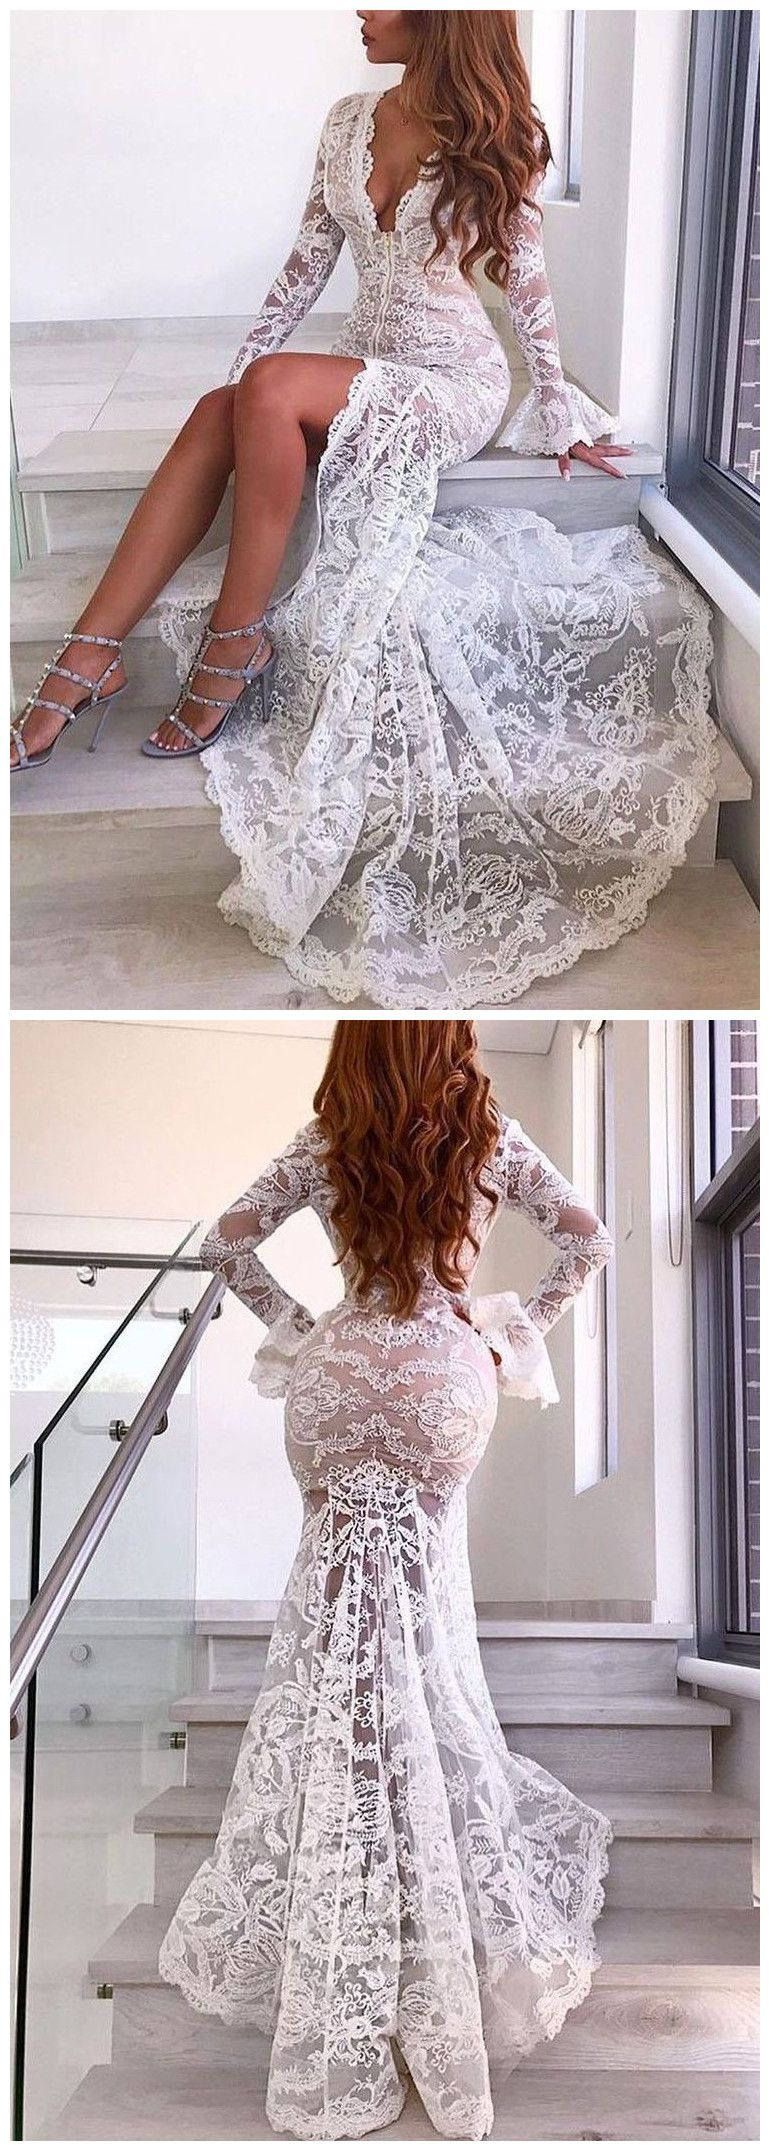 Nektaria wedding dress  TrumpetMermaid Deep V Wedding Dress With Lace Long Sleeve Sexy